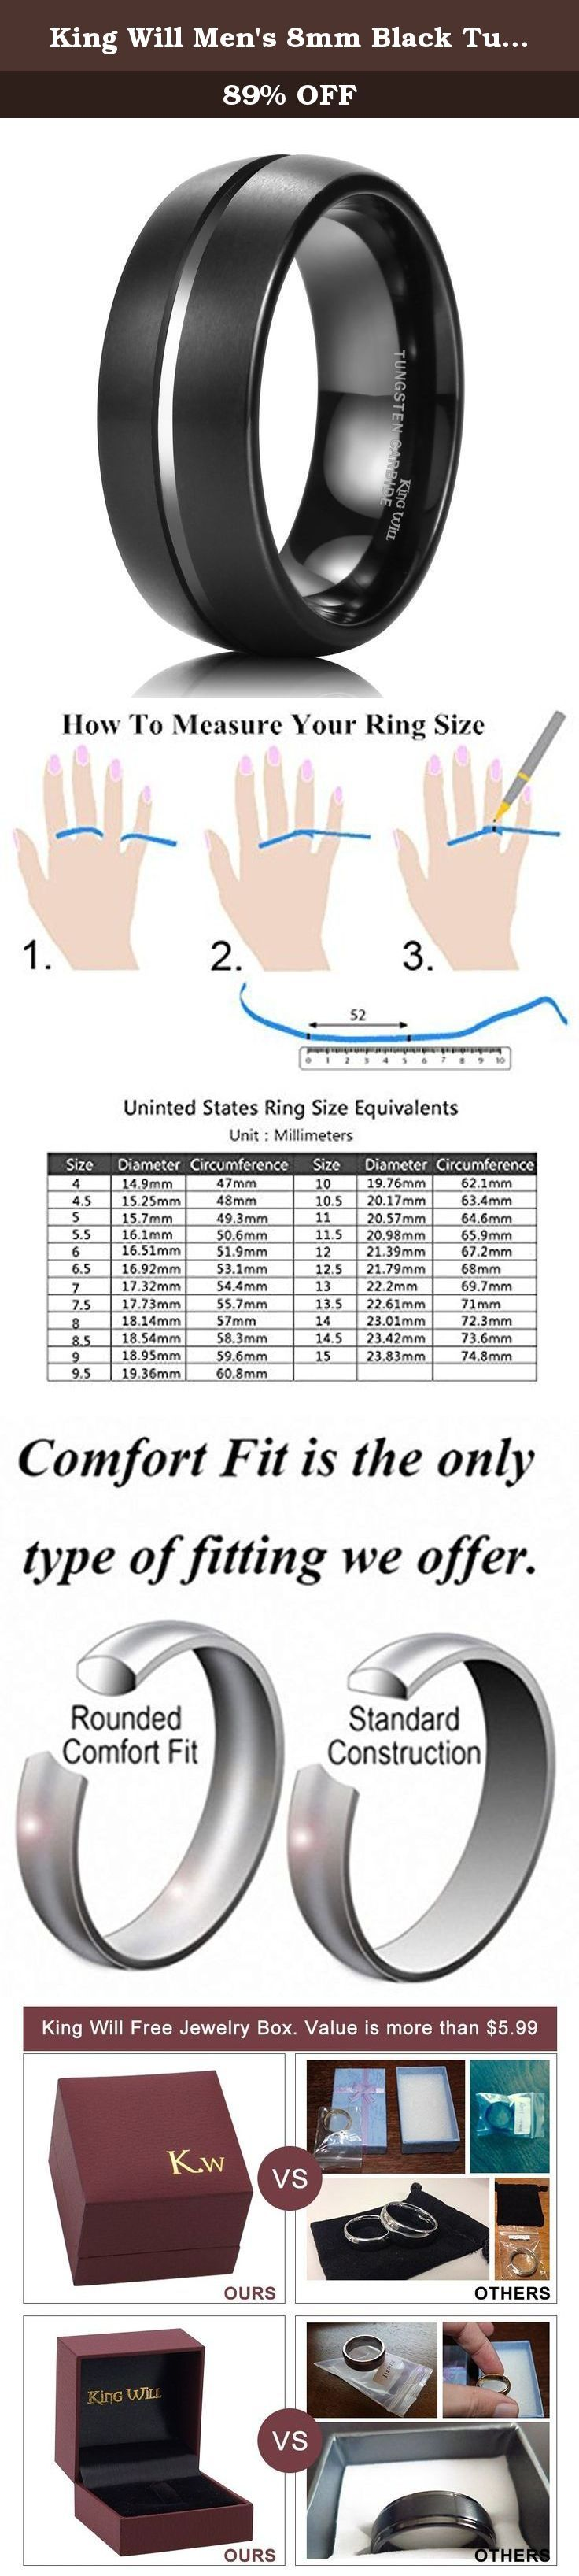 "King Will Men's 8mm Black Tungsten Carbide Ring Domed Matte Finish Groove Wedding Band Size Size(7). King Will, not only No.1 brand of tungsten carbide ring on Amazon King Will, not only an excellent brand of tungsten ring on Amazon, but also means strong will and great courage like spirit of a king, whenever facing at any dilemma. ""You never know how strong you are until being strong is the only choice you have."" Tungsten, hardness is second only to diamond. Inspired by the meaning…"